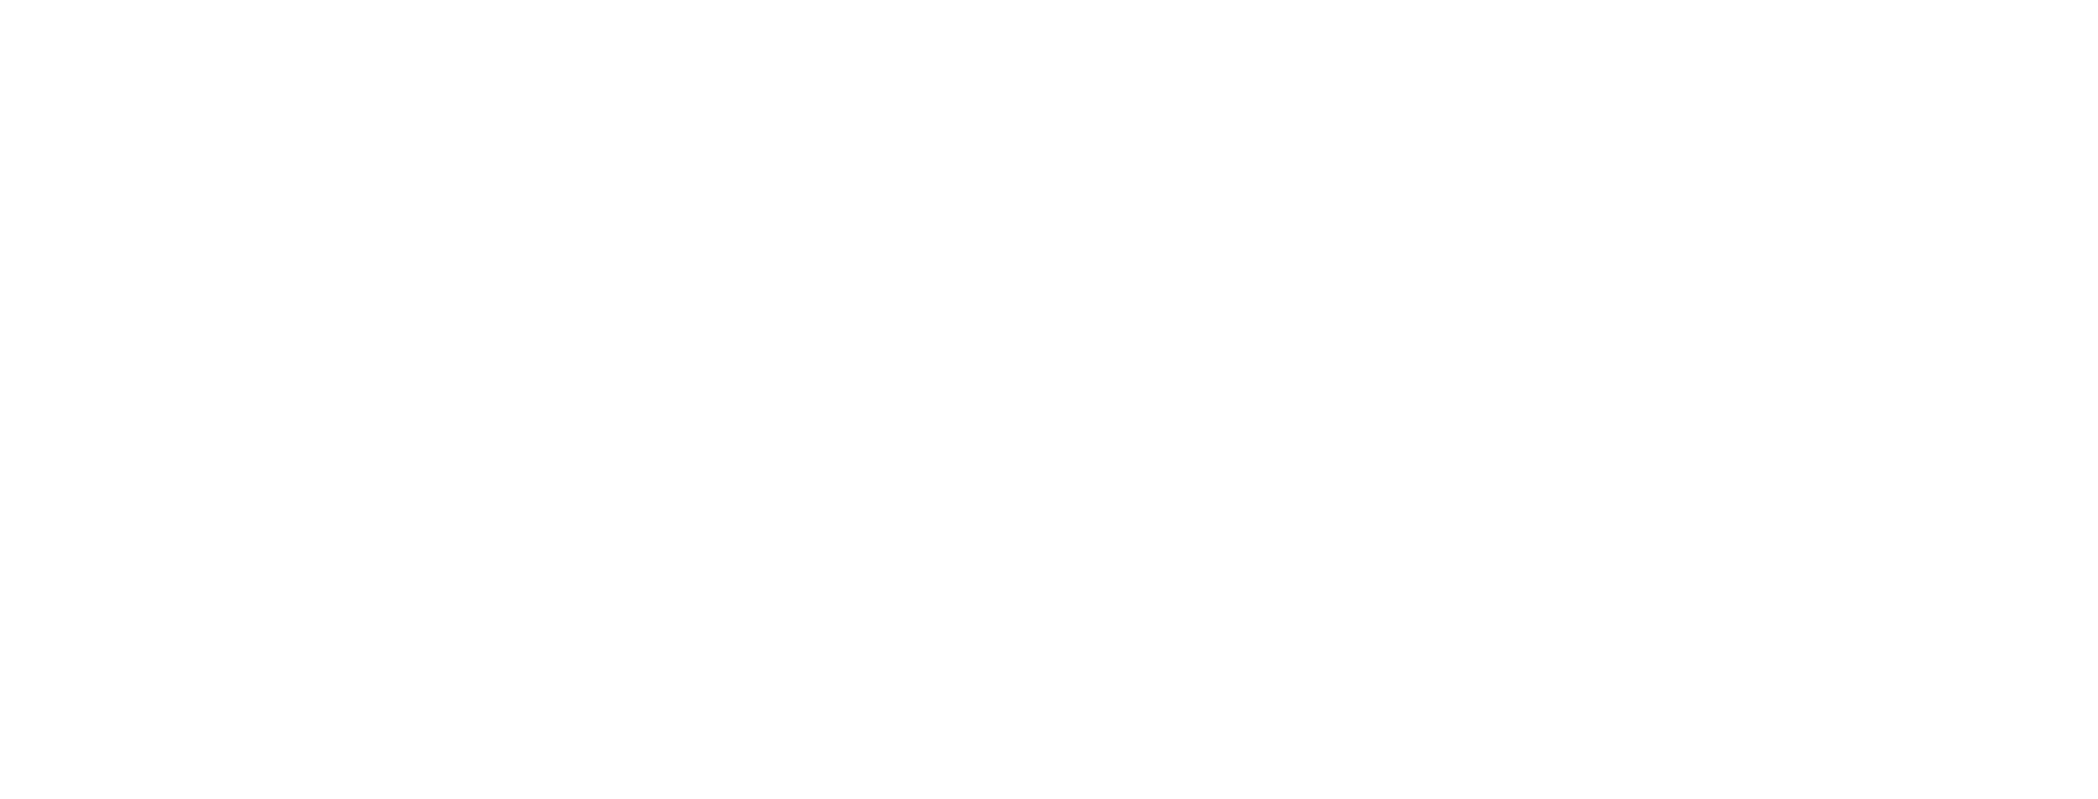 Rebel Bourbon